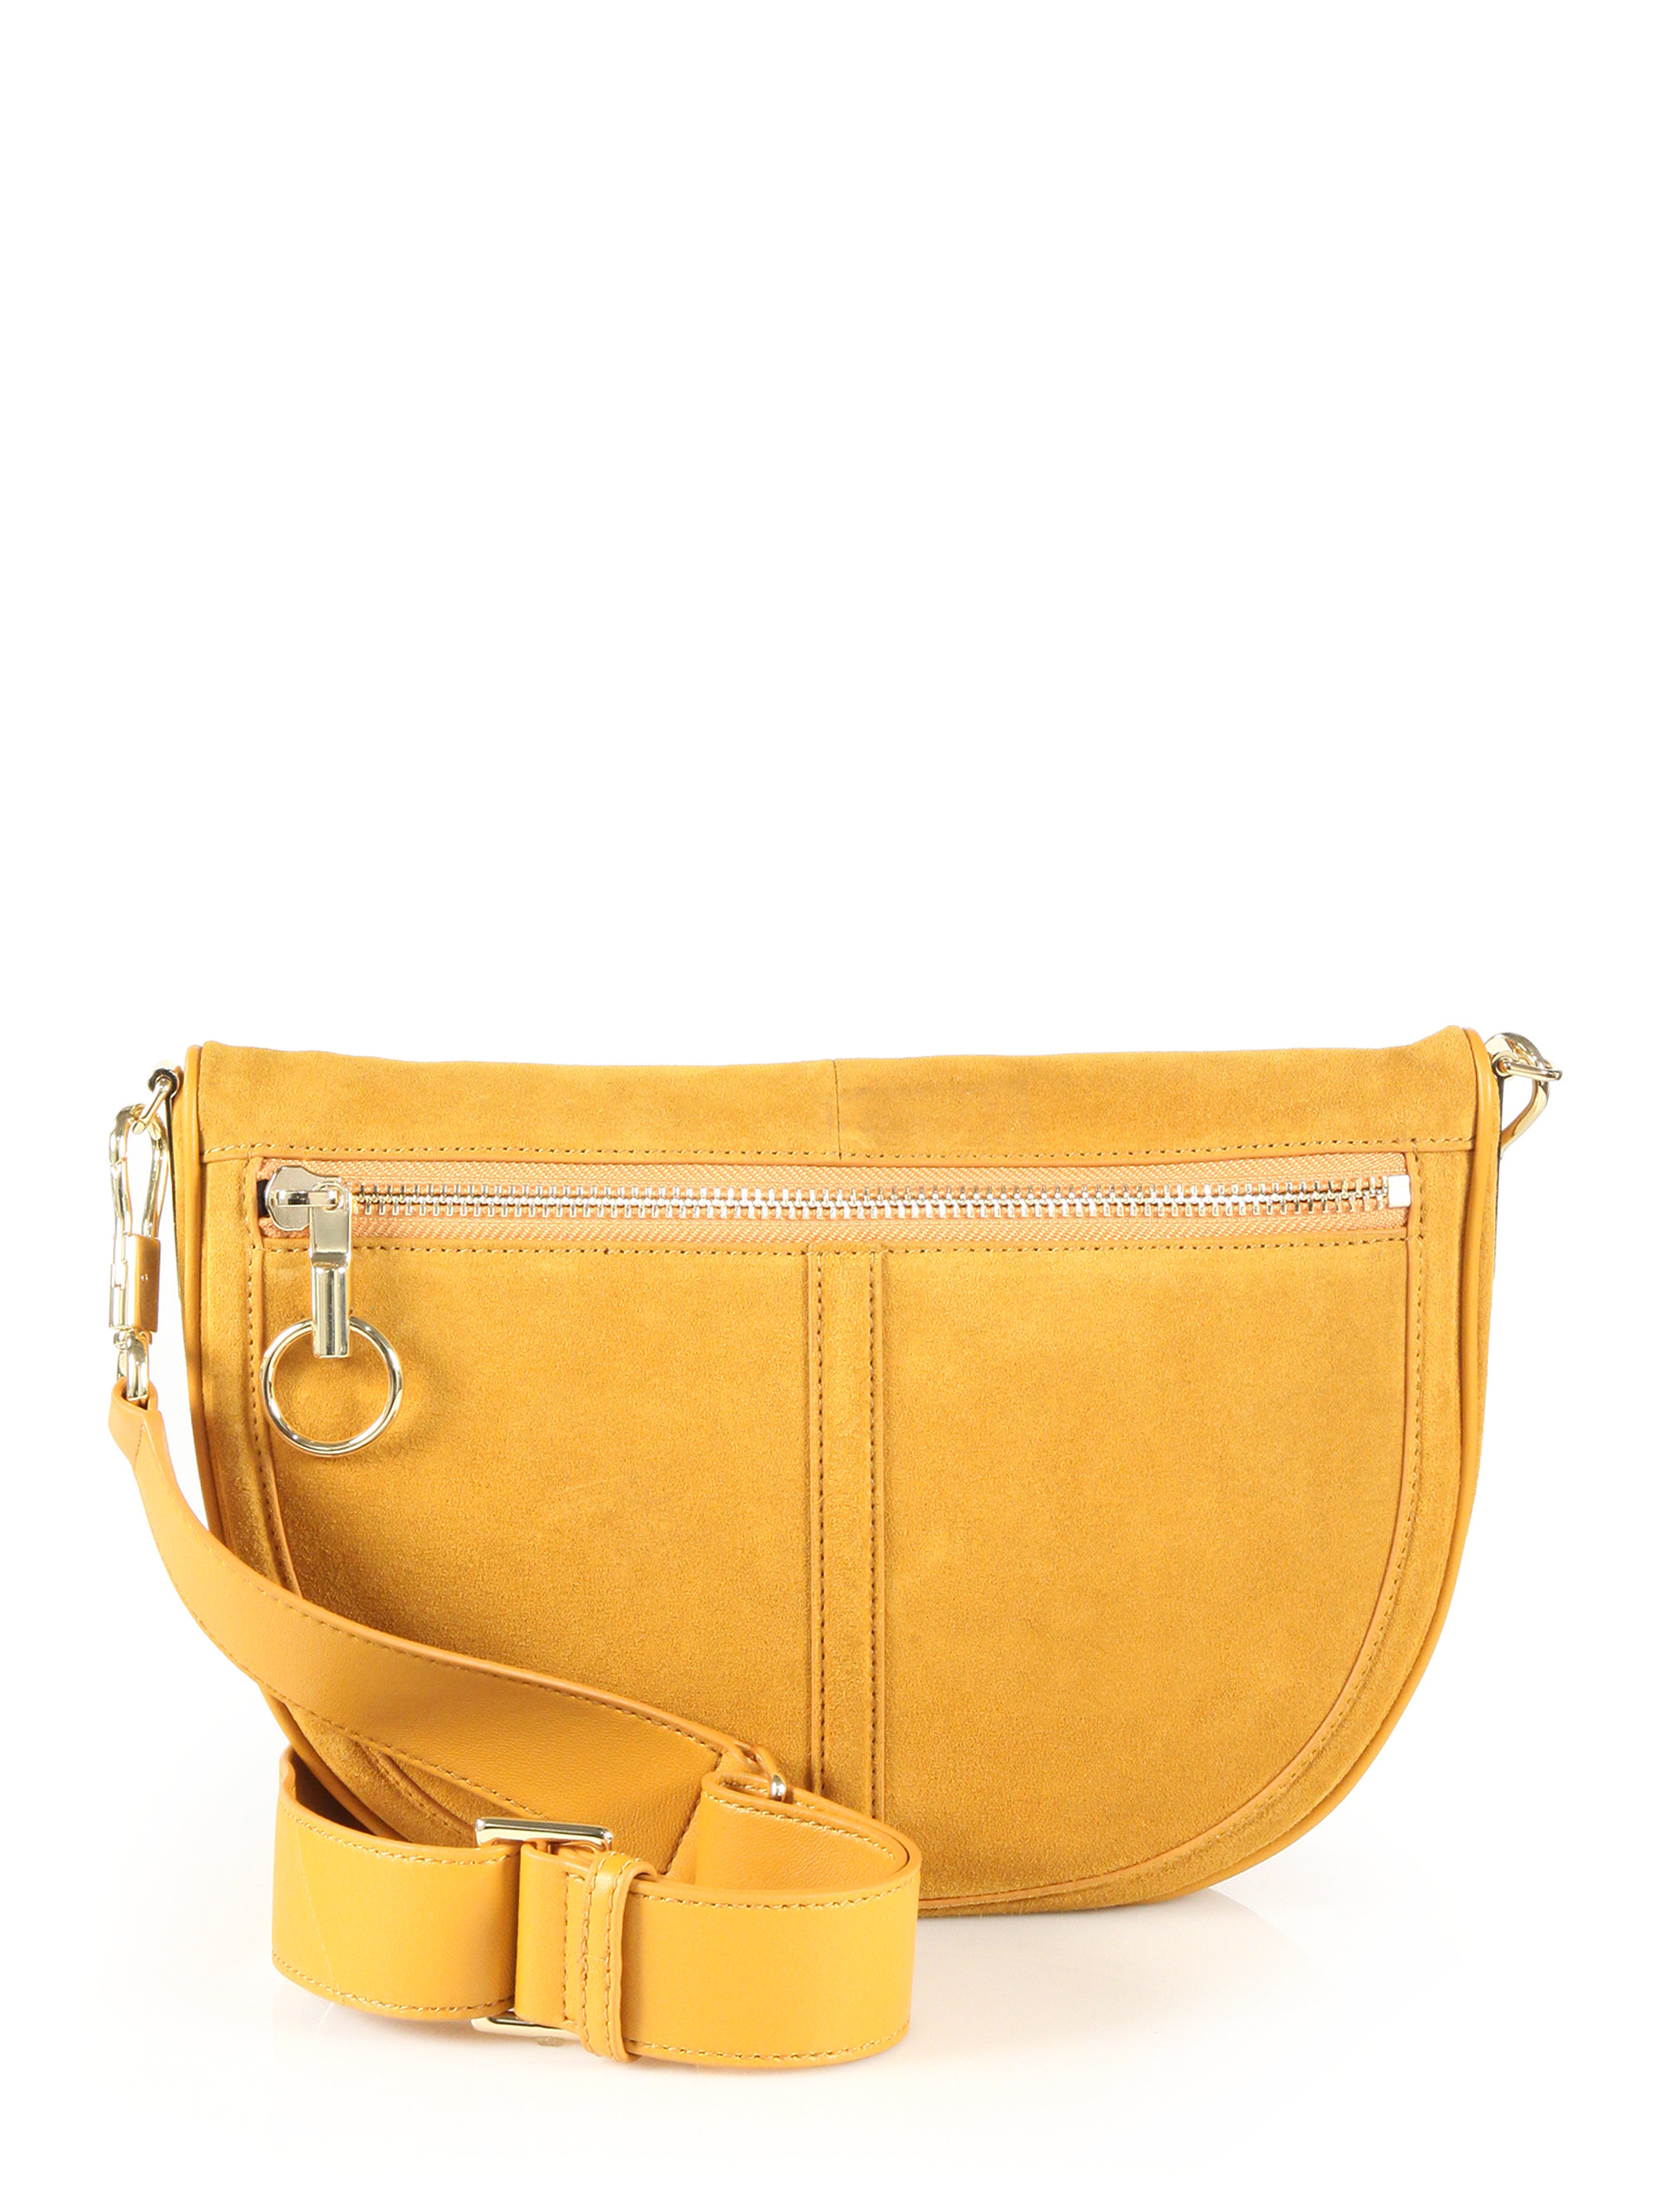 c50efed32b Elizabeth and James Scott Moon Small Suede Crossbody Bag in Yellow ...